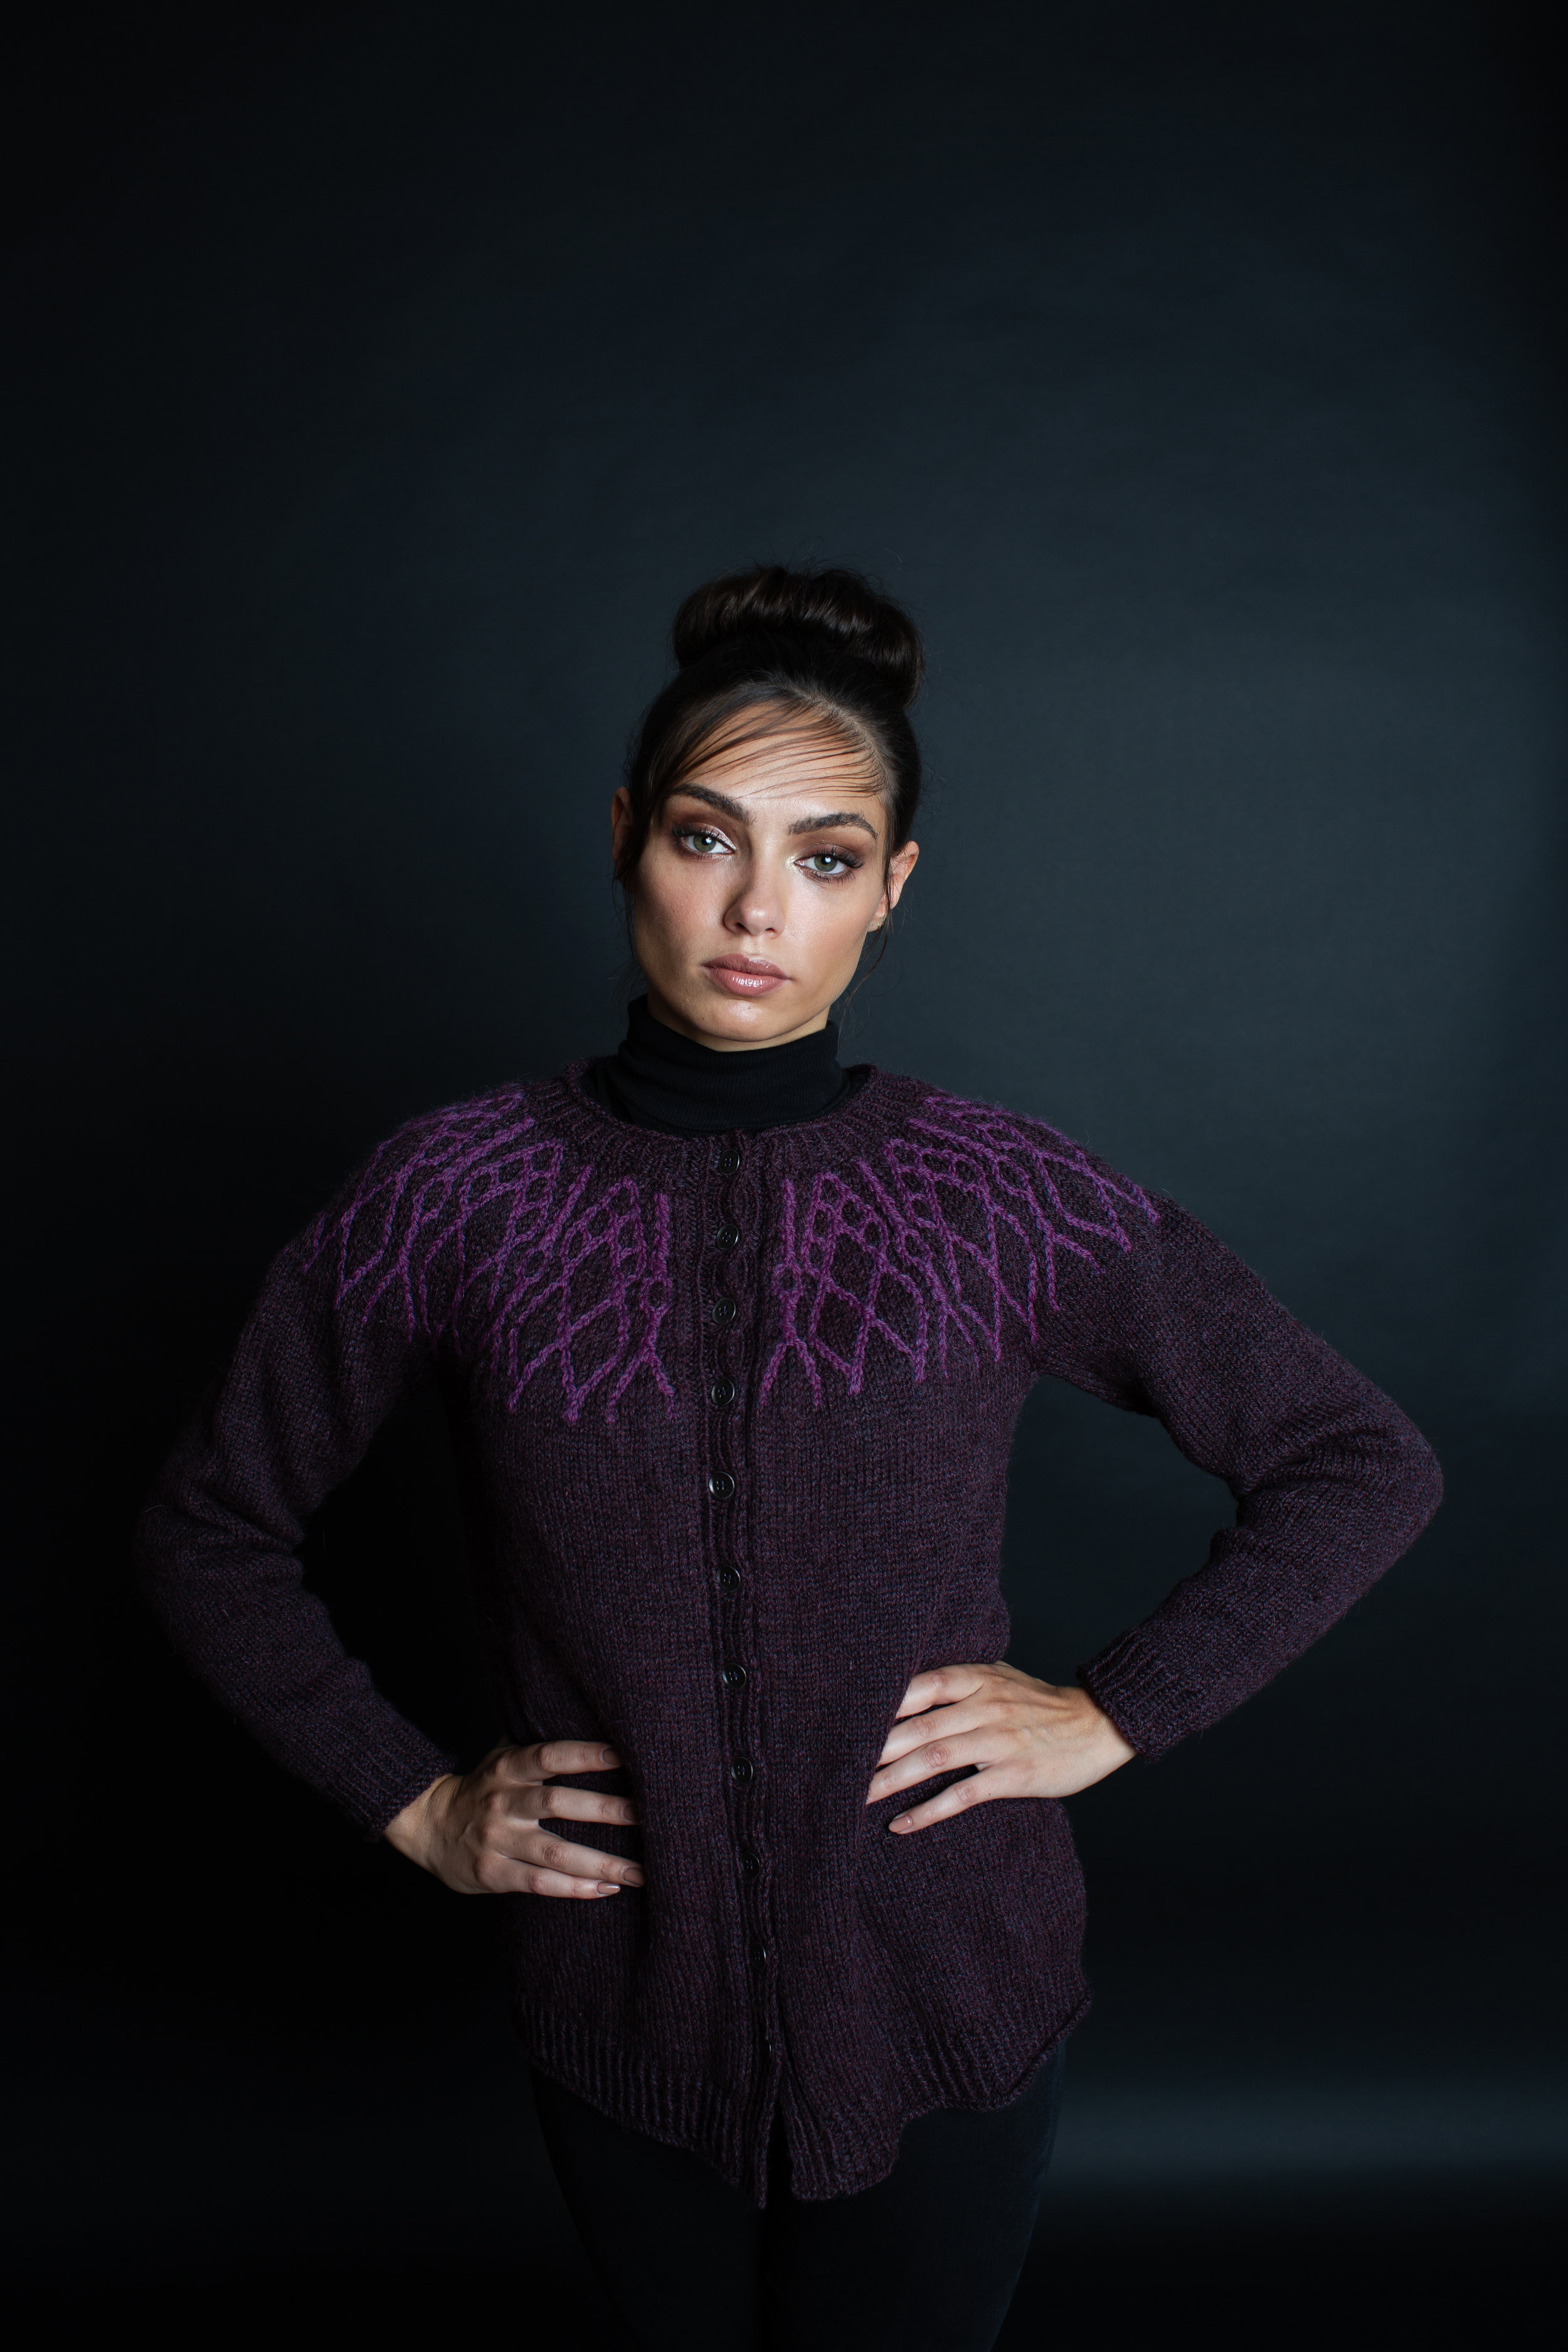 Alexandrite Cardigan by Amy Gunderson for JEWELS by Making Stories